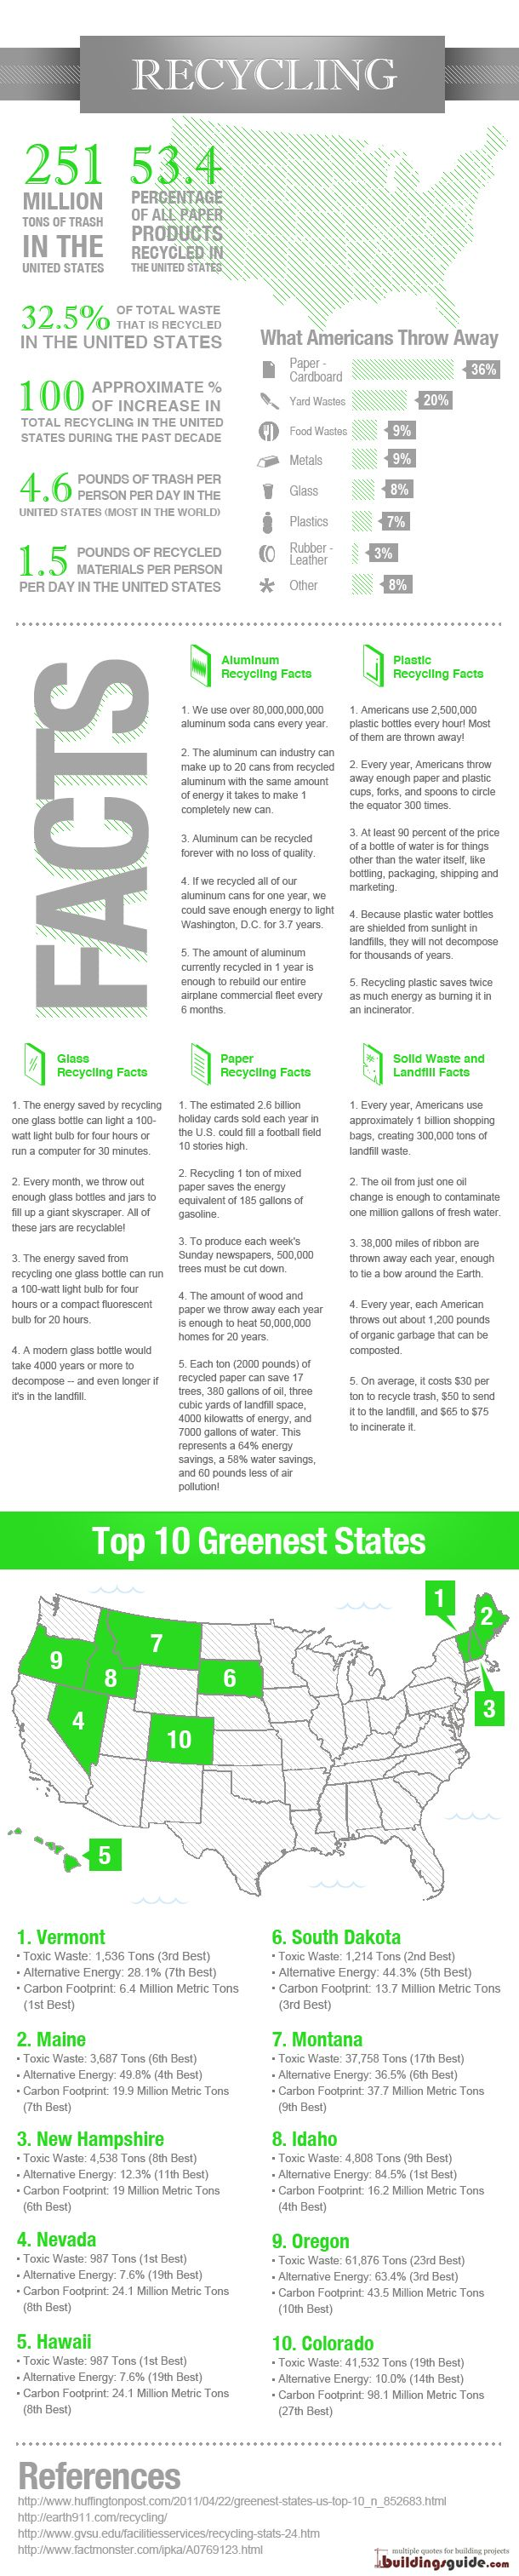 "Earth911.com article about the top 10 greenest states.  No surprises here, but my state is not in the top 10 :(  Some interesting stats on recycling too, for example ""Every year Americans use 1 BILLION plastic shopping bags, creating 300,000 tons of landfill waste"" ."